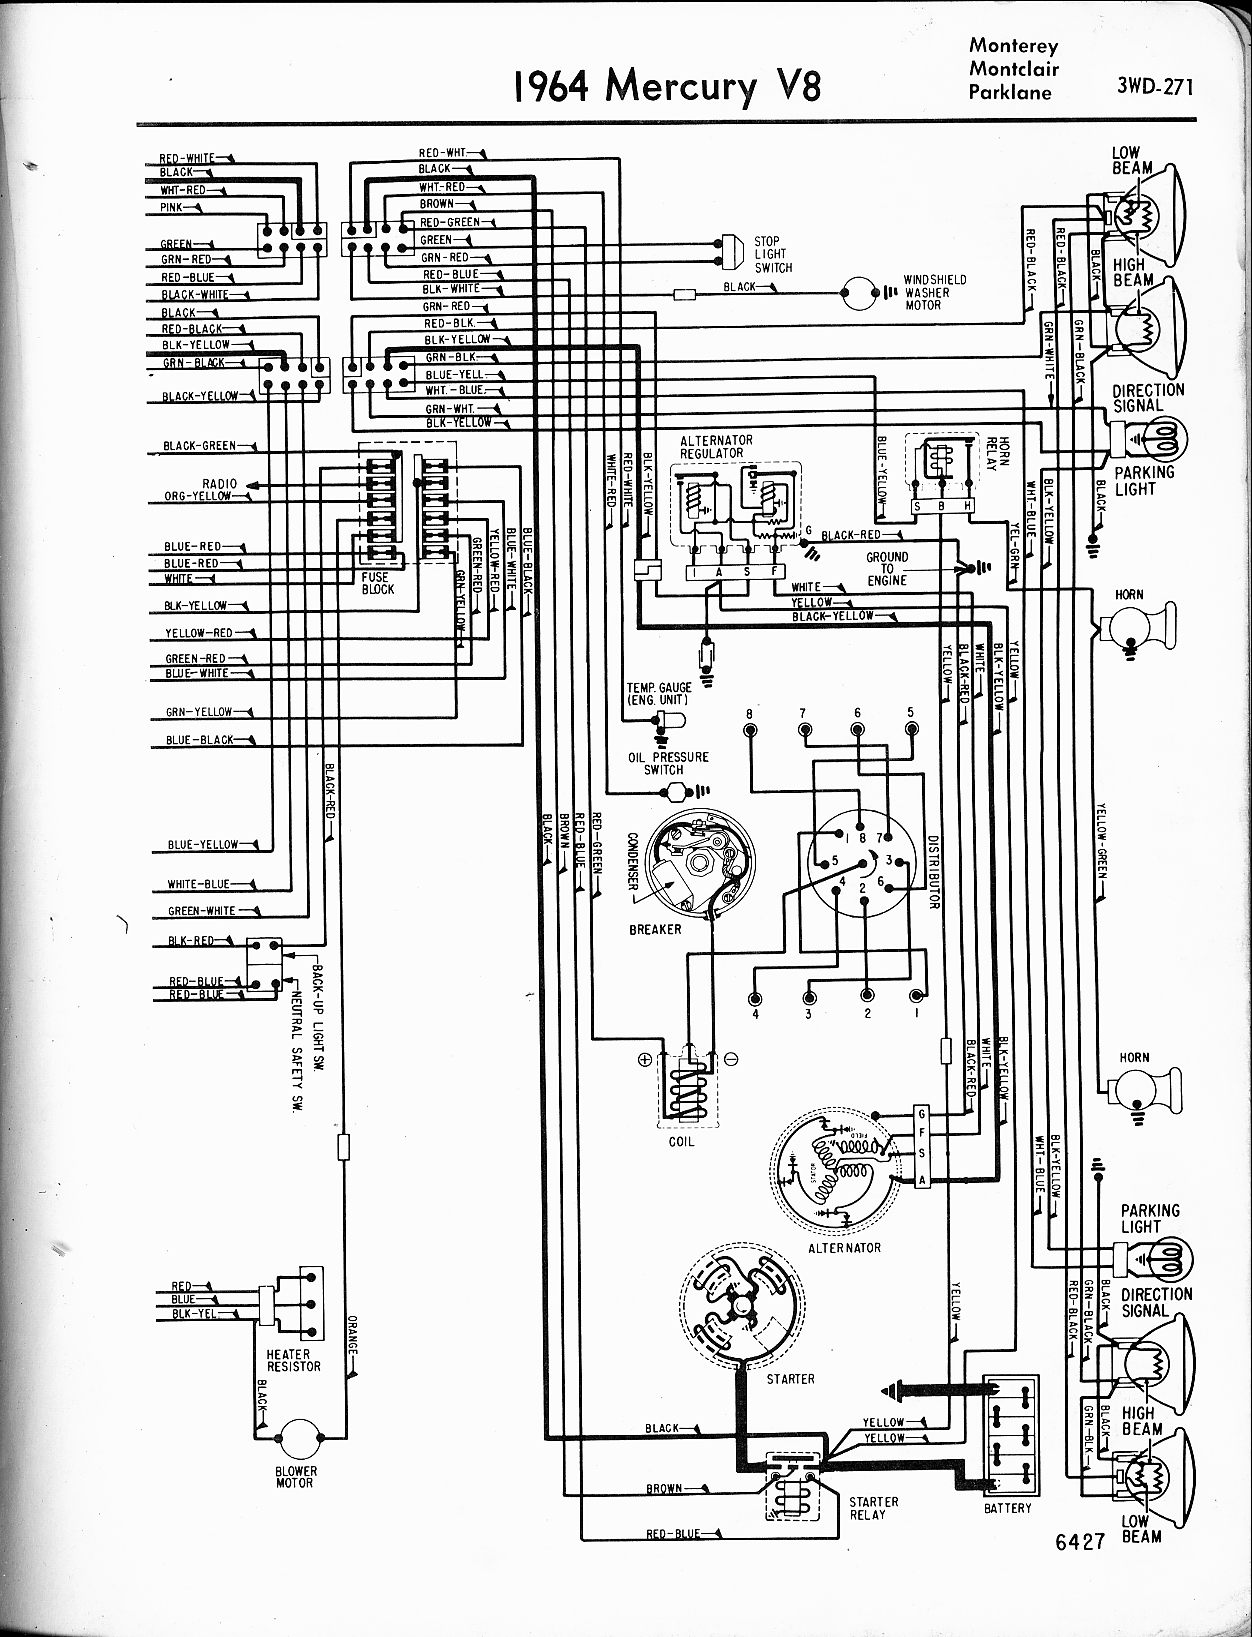 Fuse Diagram 2004 Impala Ss Circuit Wiring And Hub 1966 Box To Painless Electrical Work Mercury Diagrams The Old Car Manual Project Chevy Parts 2007 Location